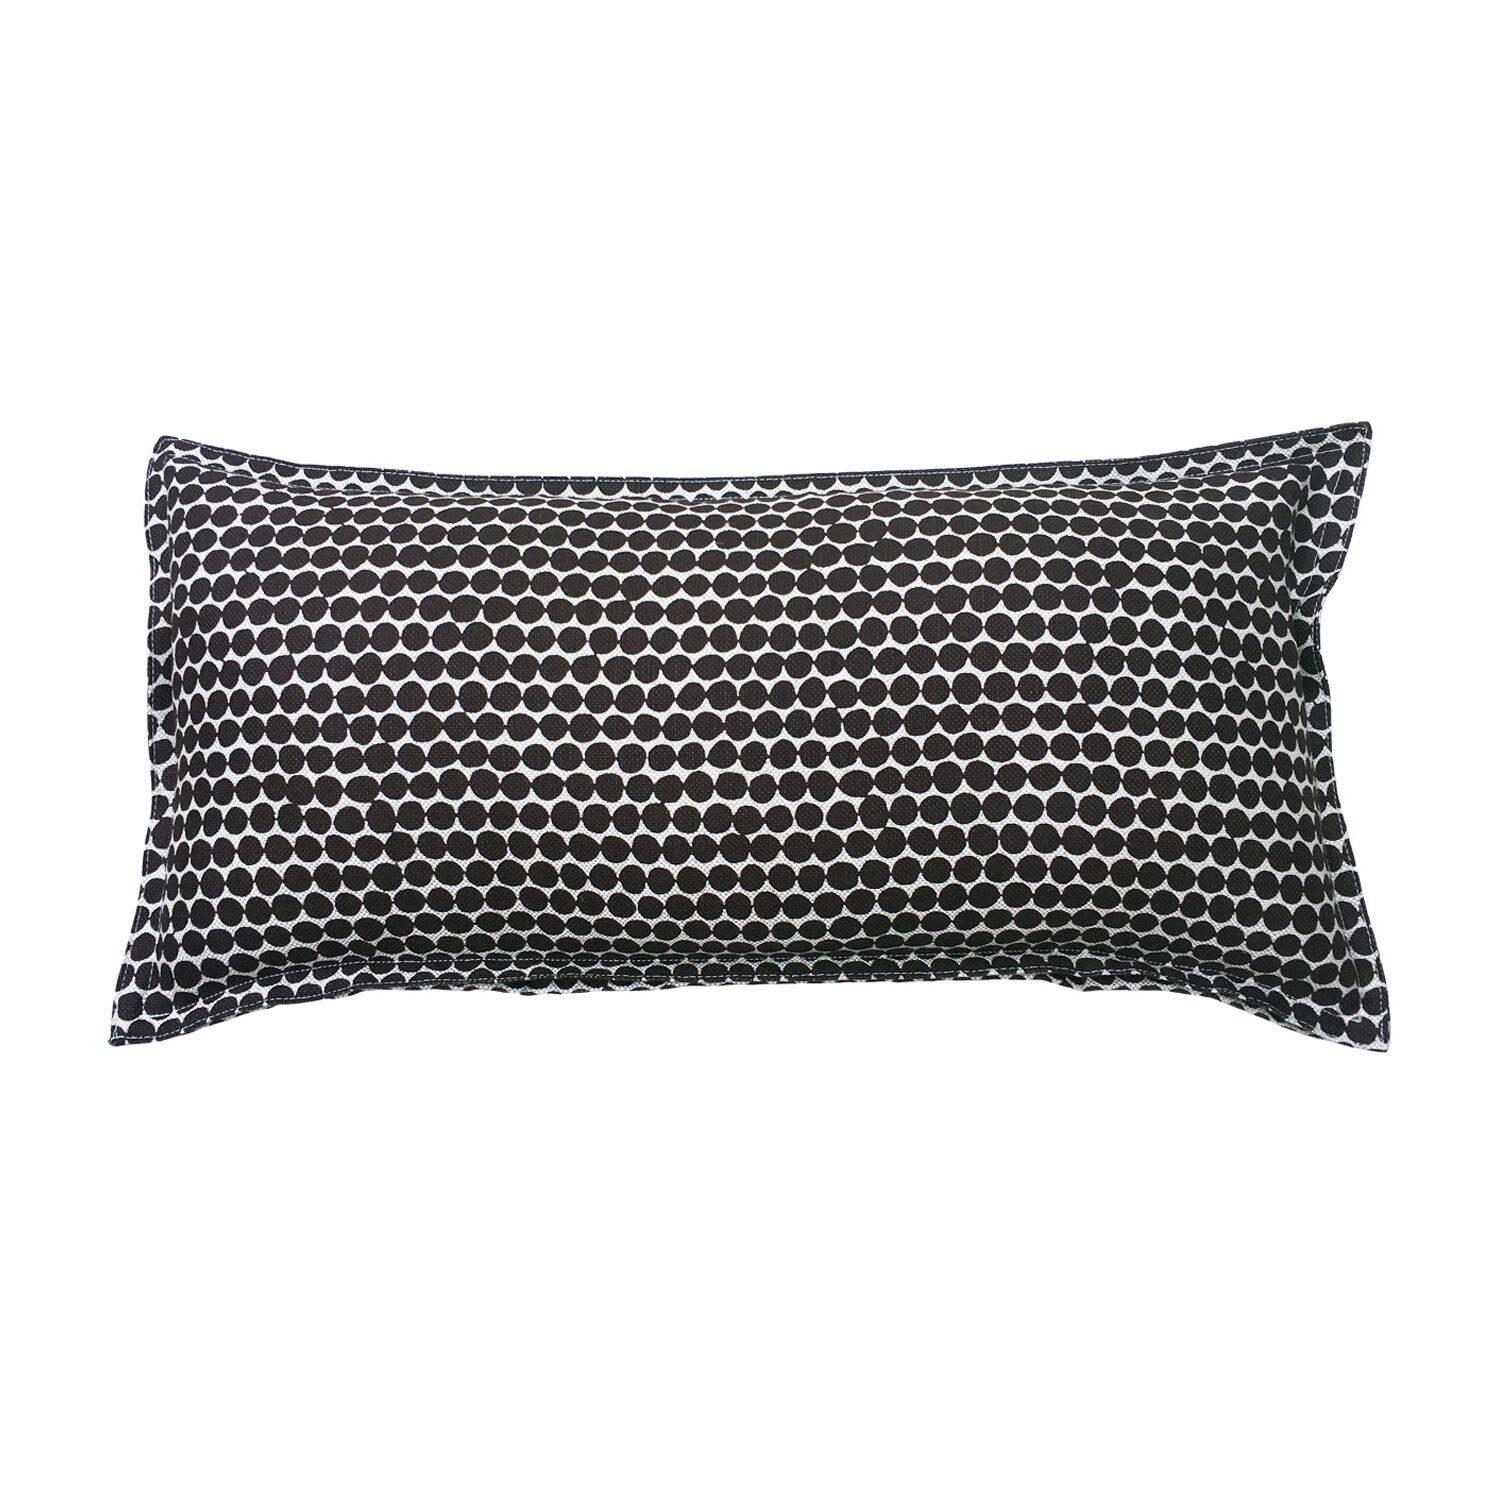 Espresso Beads on Wheat Cotton Linen Pillow